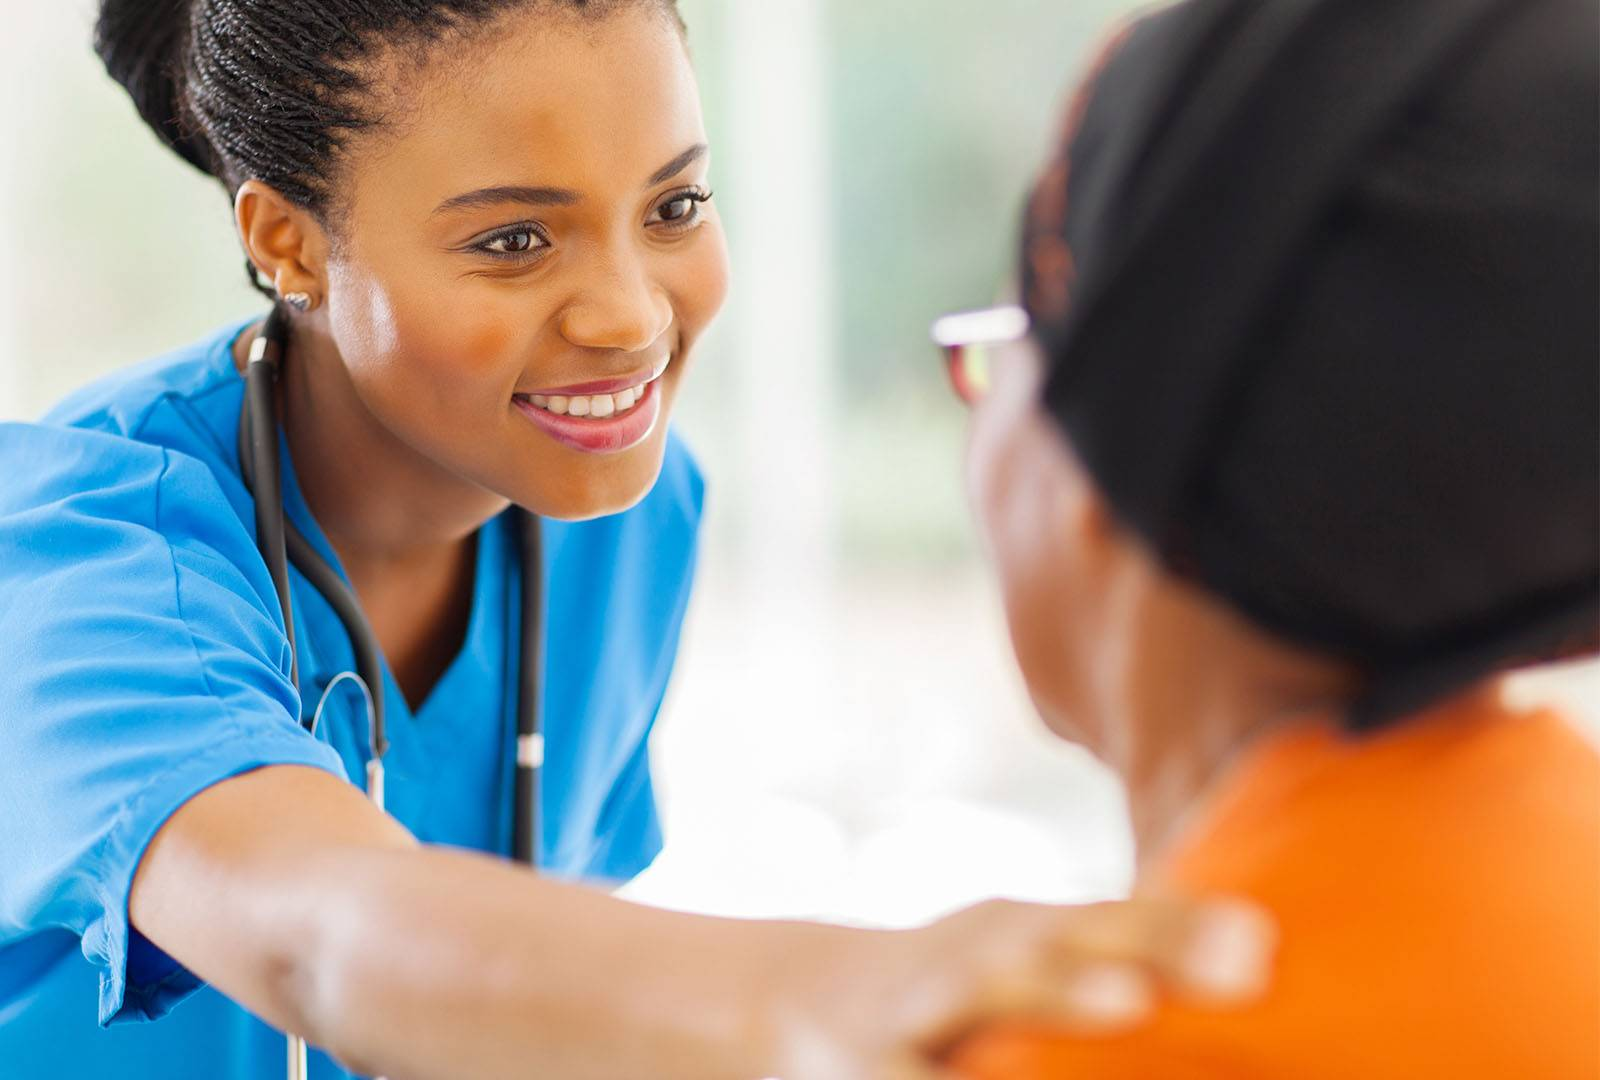 nurse working with patient smiling